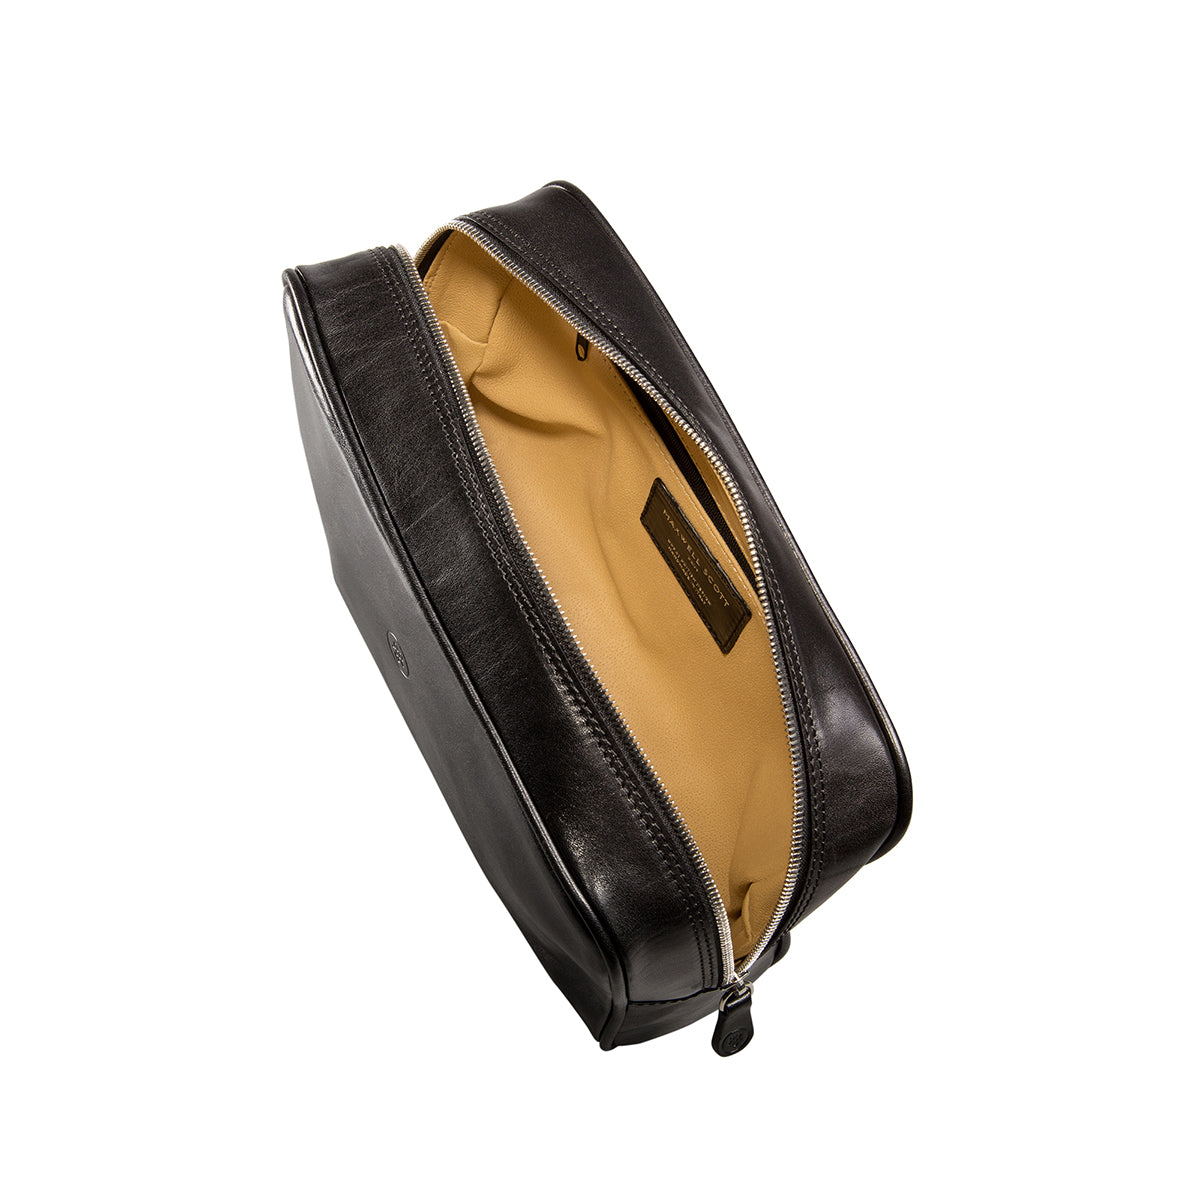 Image 5 of the 'Raffaelle' Black Veg-Tanned Leather Wash Bag